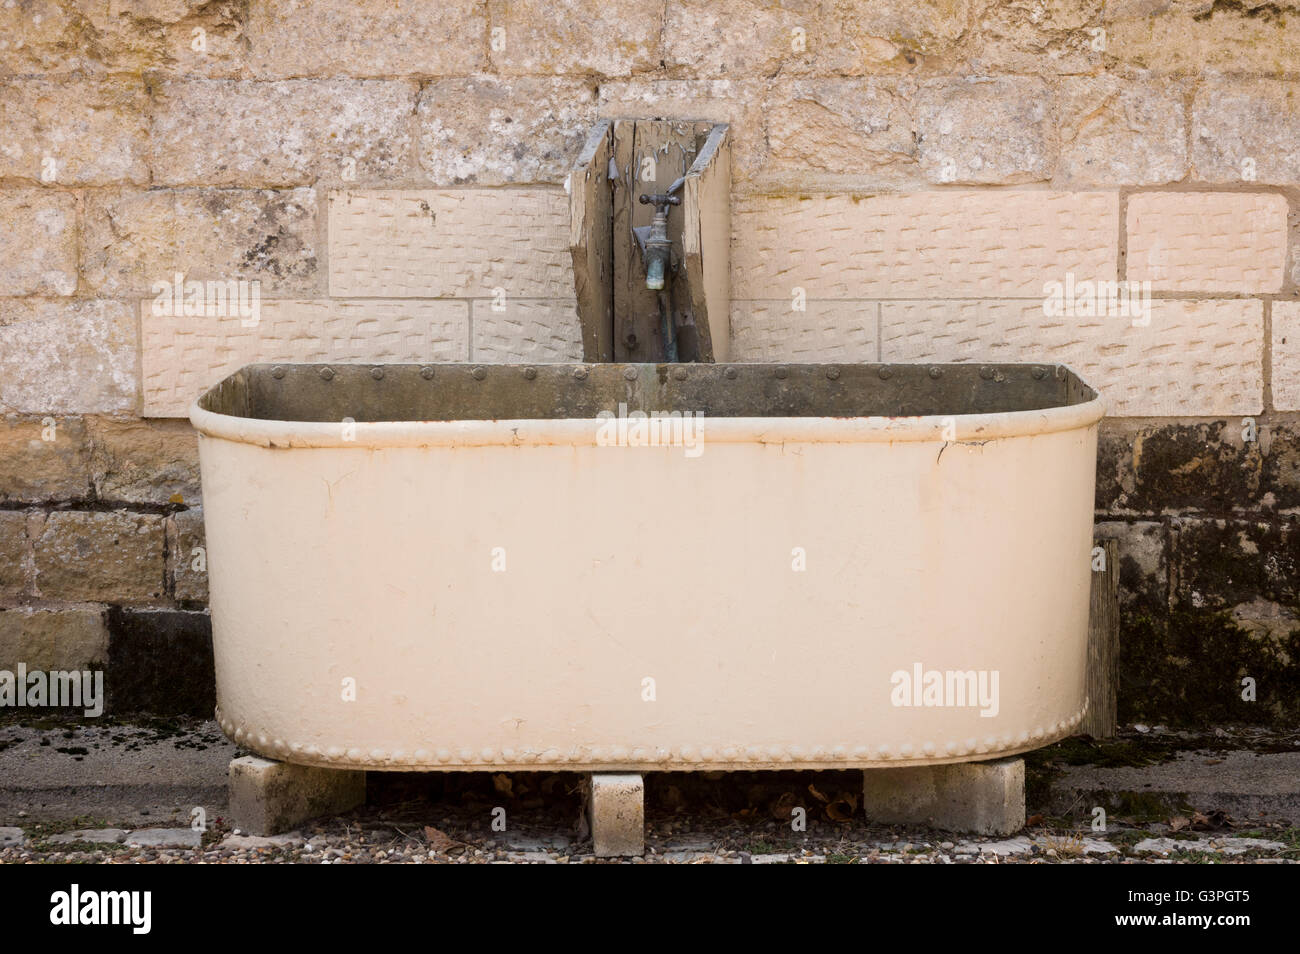 Antique Horse Trough High Resolution Stock Photography And Images Alamy